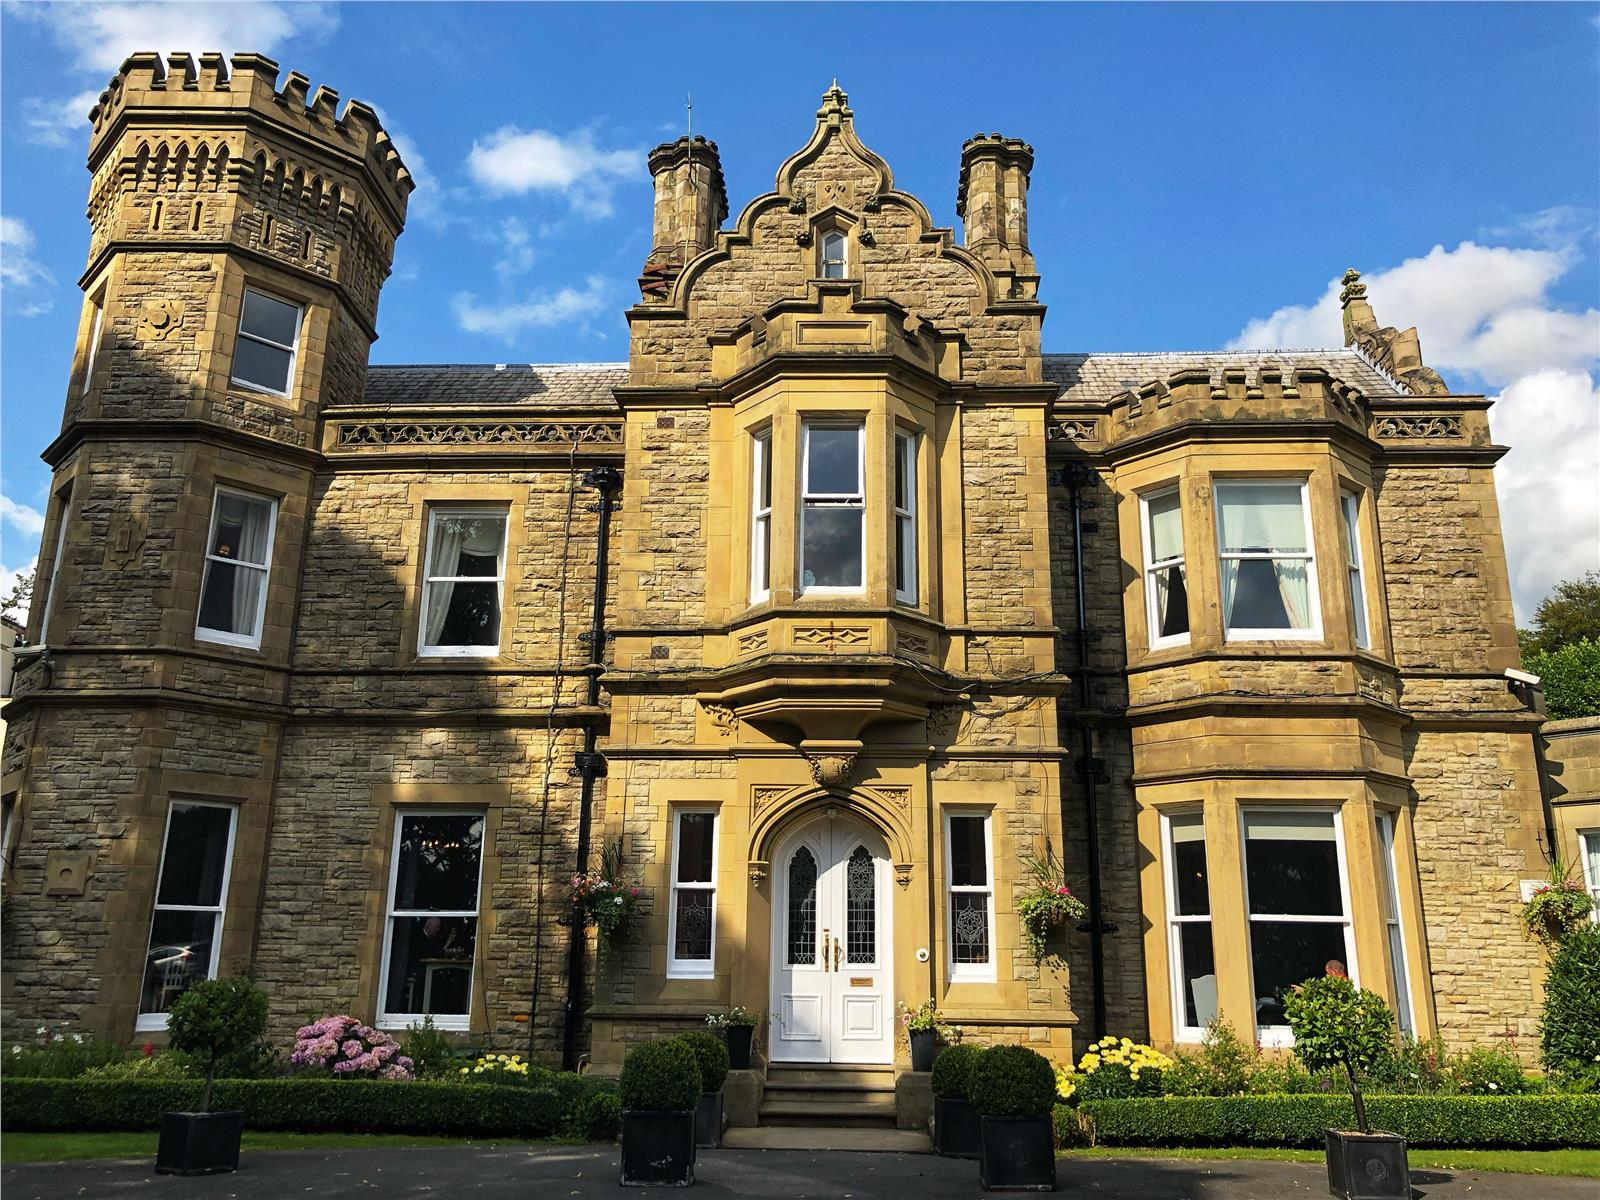 Hollin Hall Country House Hotel Jackson Lane, Kerridge, Macclesfield, SK10 5BG